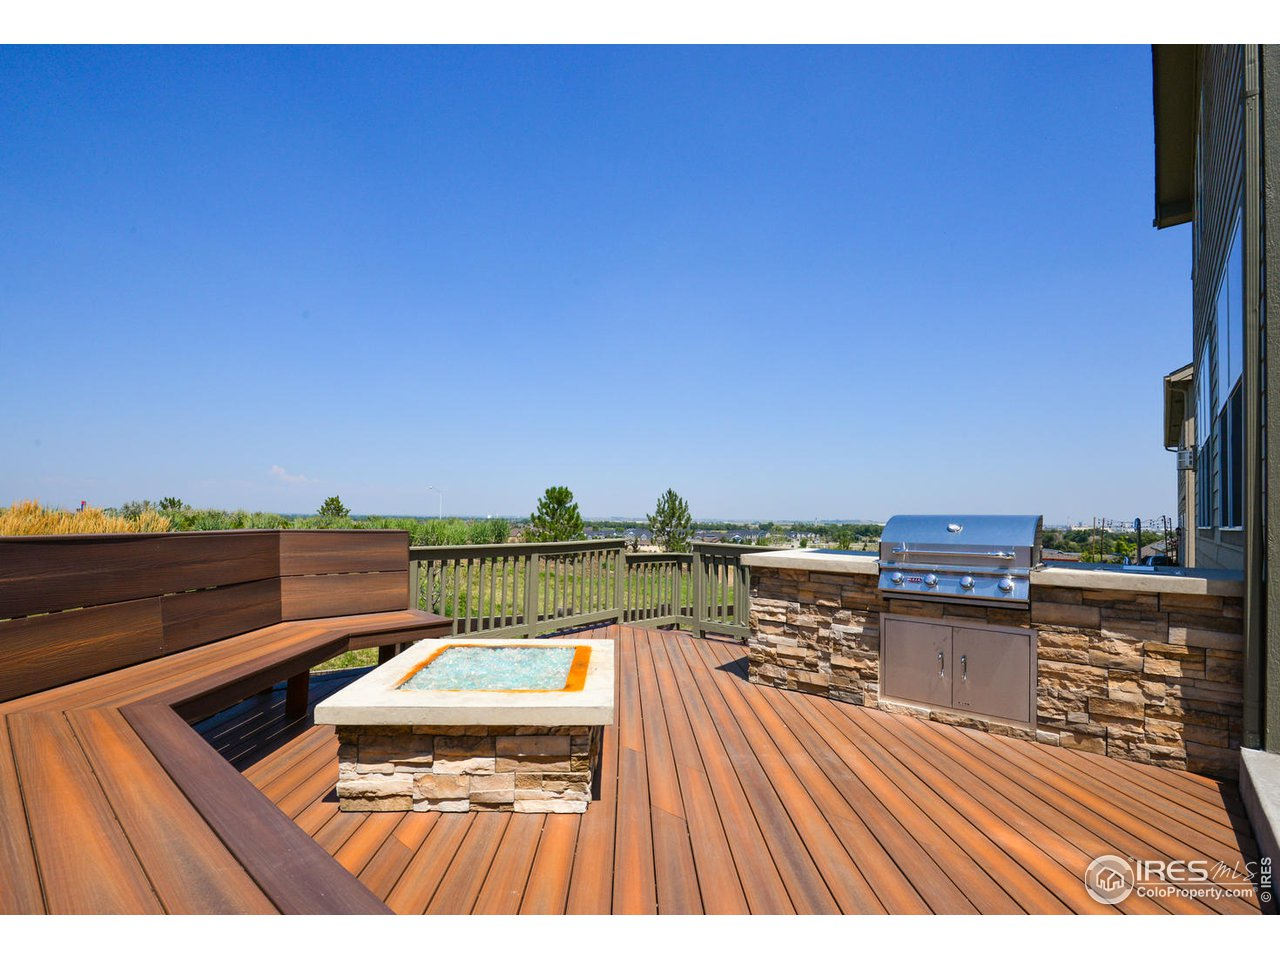 Huge deck w/ built in bench seating